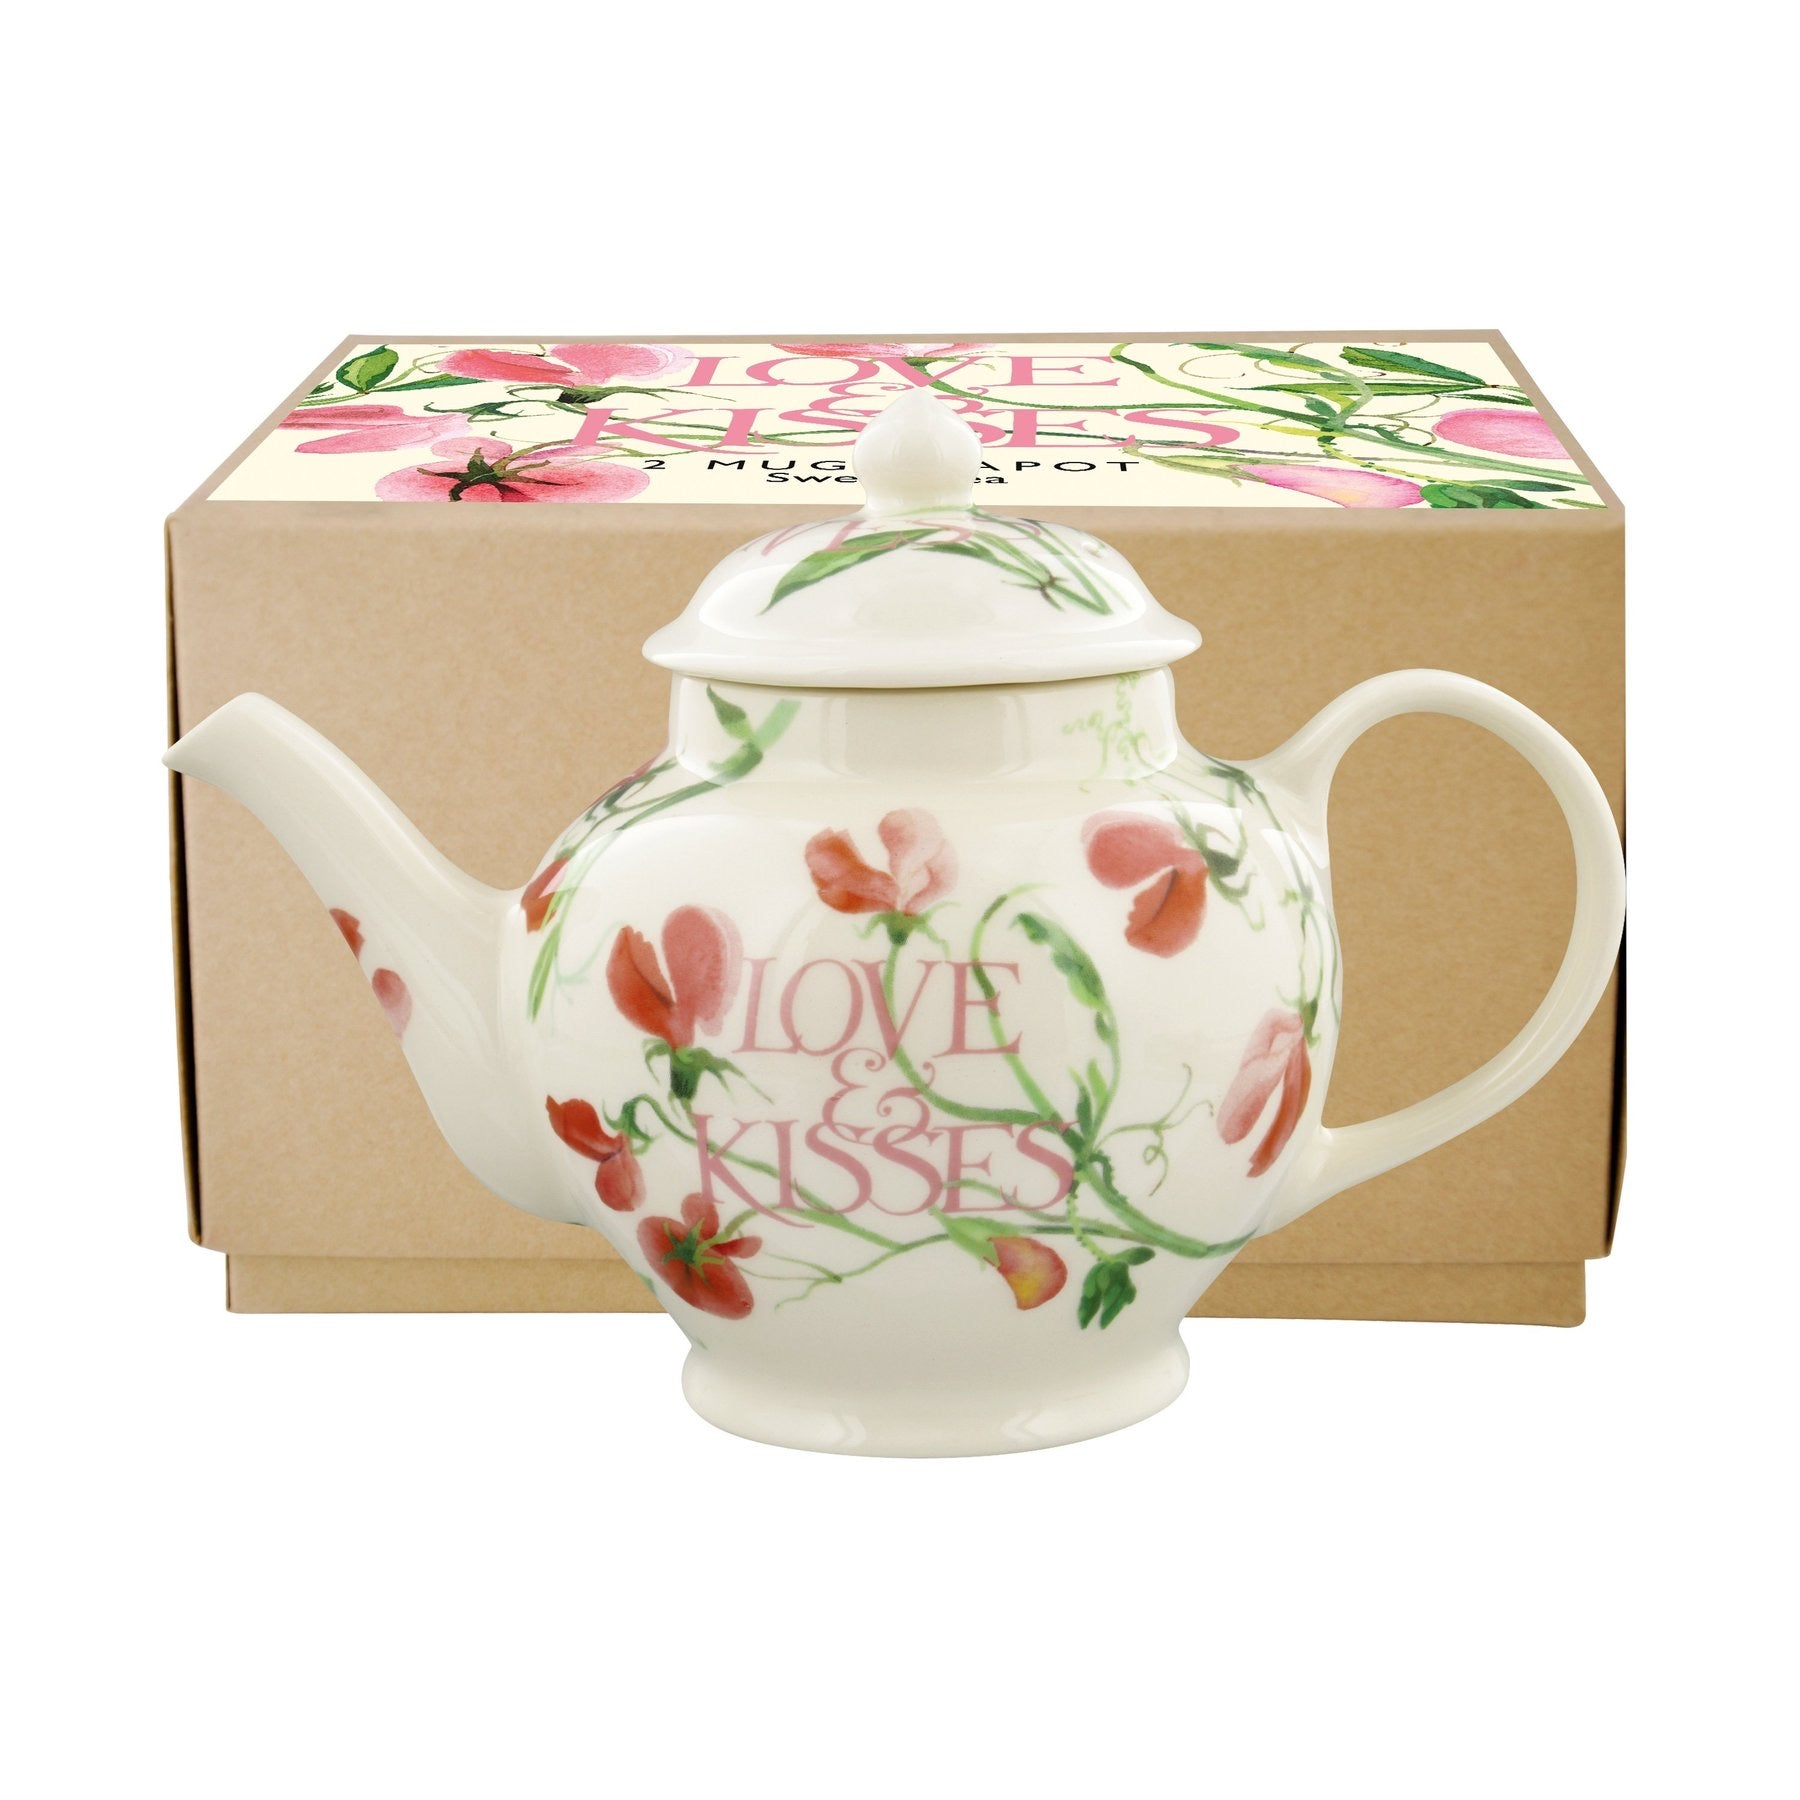 Emma Bridgewater Sweet Pea 'Love & Kisses' 2 Mug Teapot